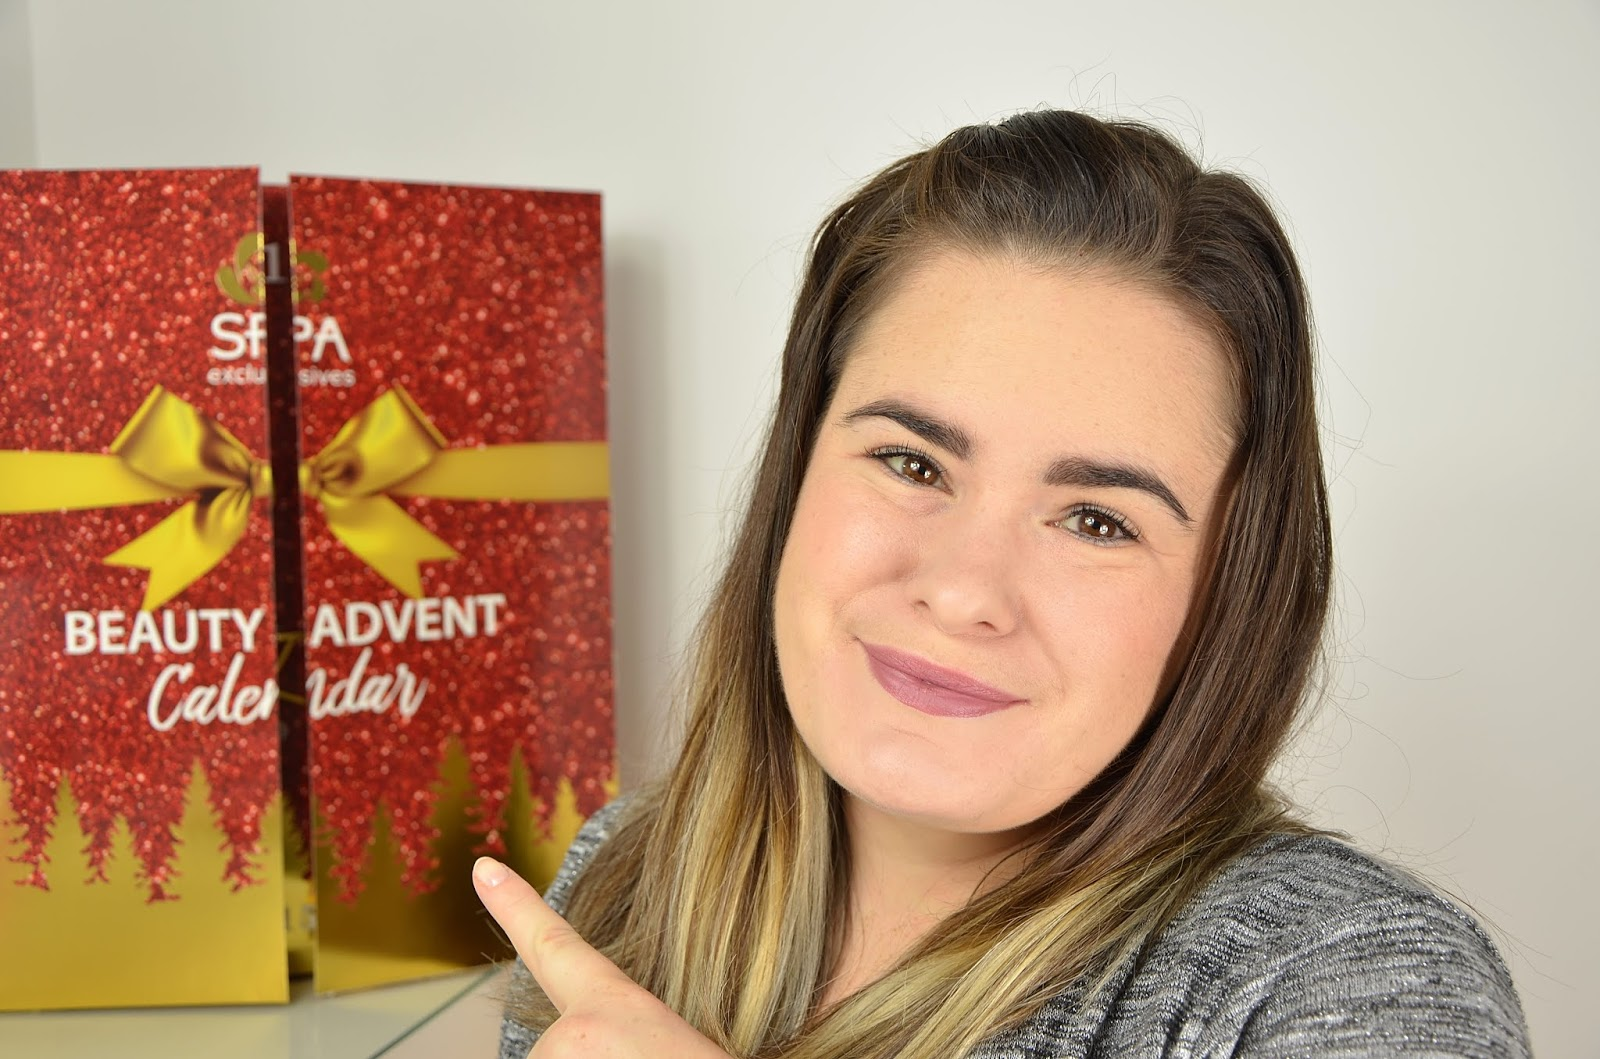 unboxing calendrier de l'avent spa action